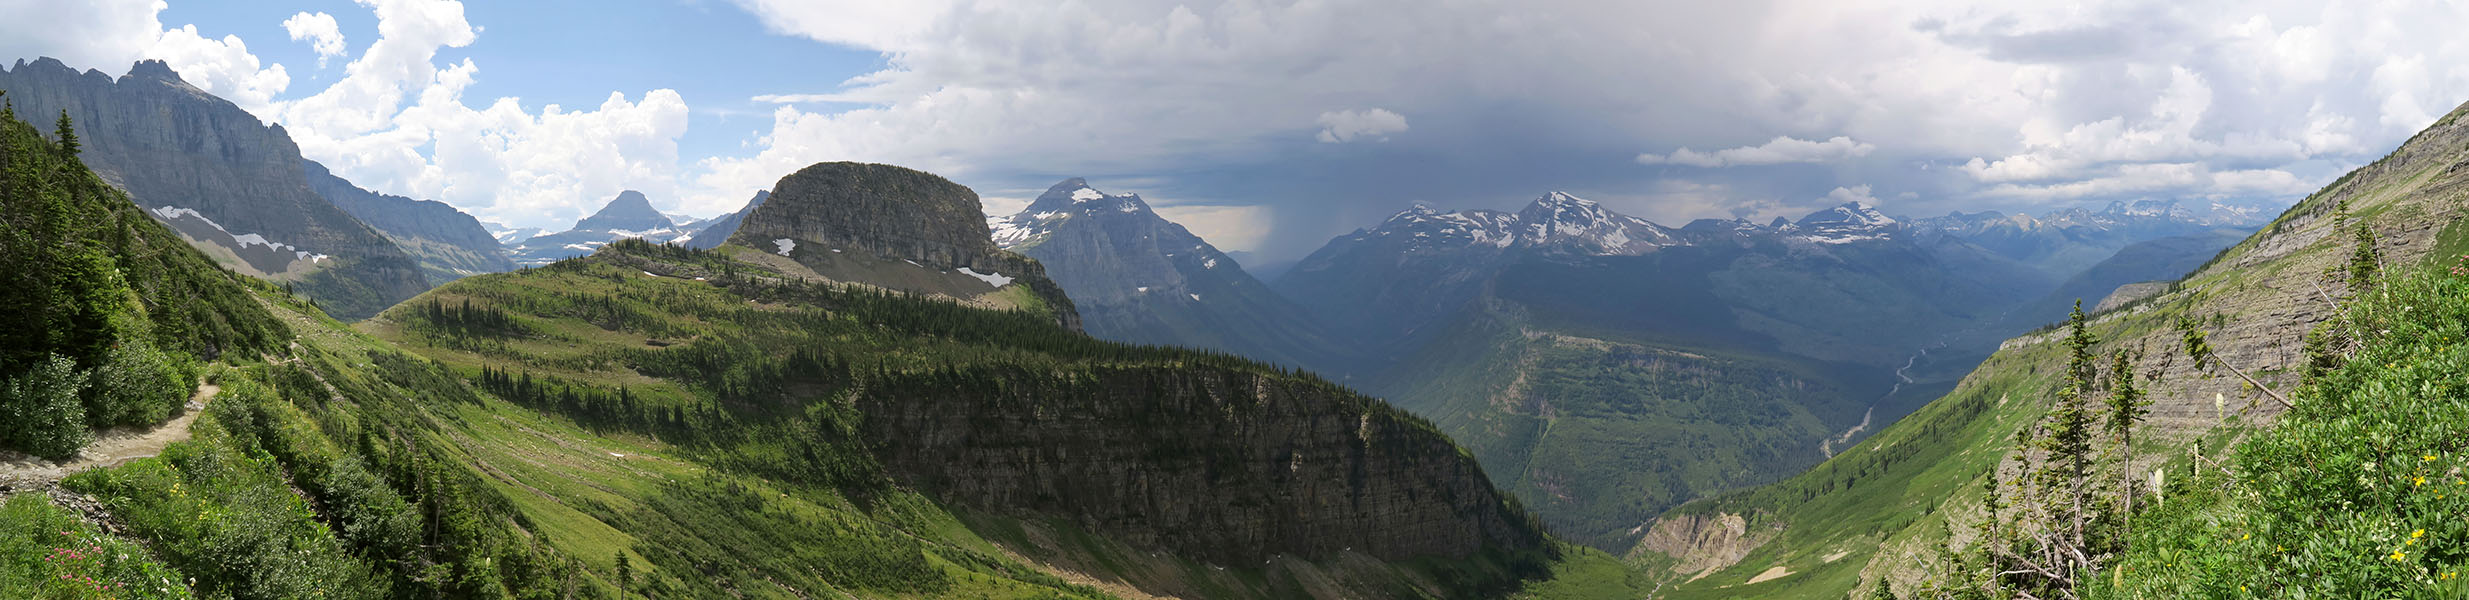 Haystack Butte panorama [Highline Trail, Glacier National Park, Montana]